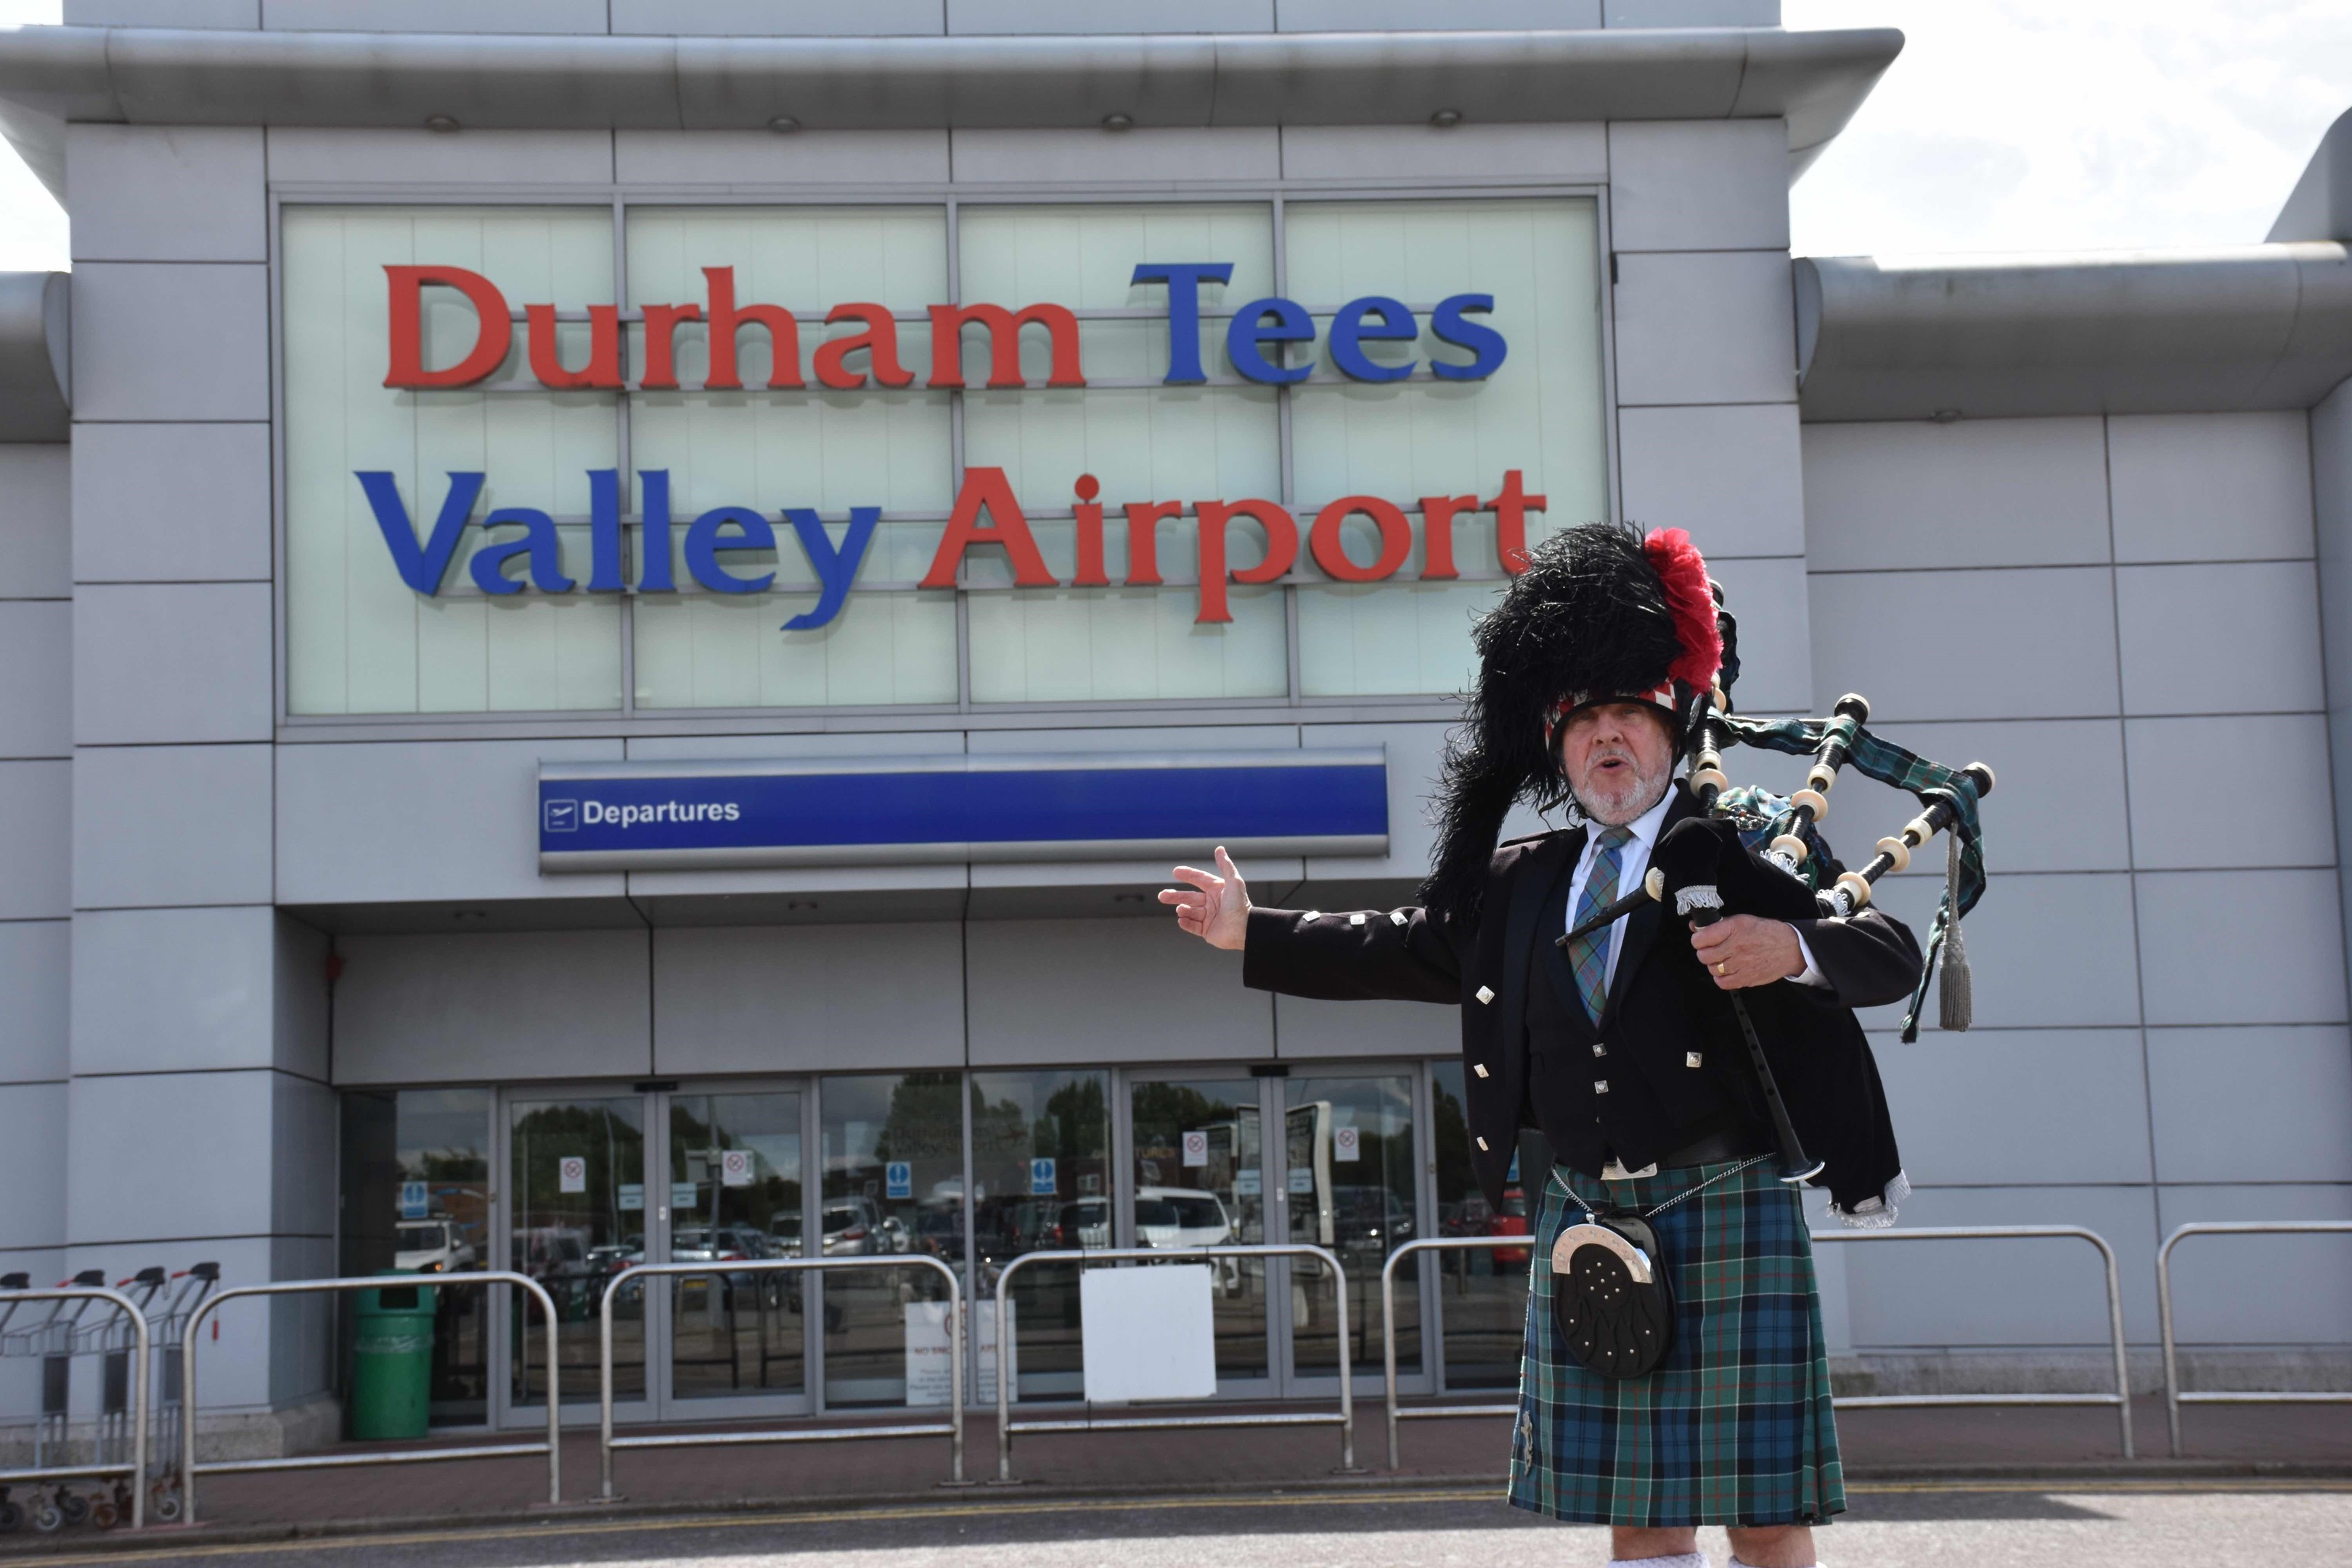 Derek Millmoor was booked to play for logan Air at Tees valley Airport, but security would not let him onto the tarmac, and he had to play outside the airport